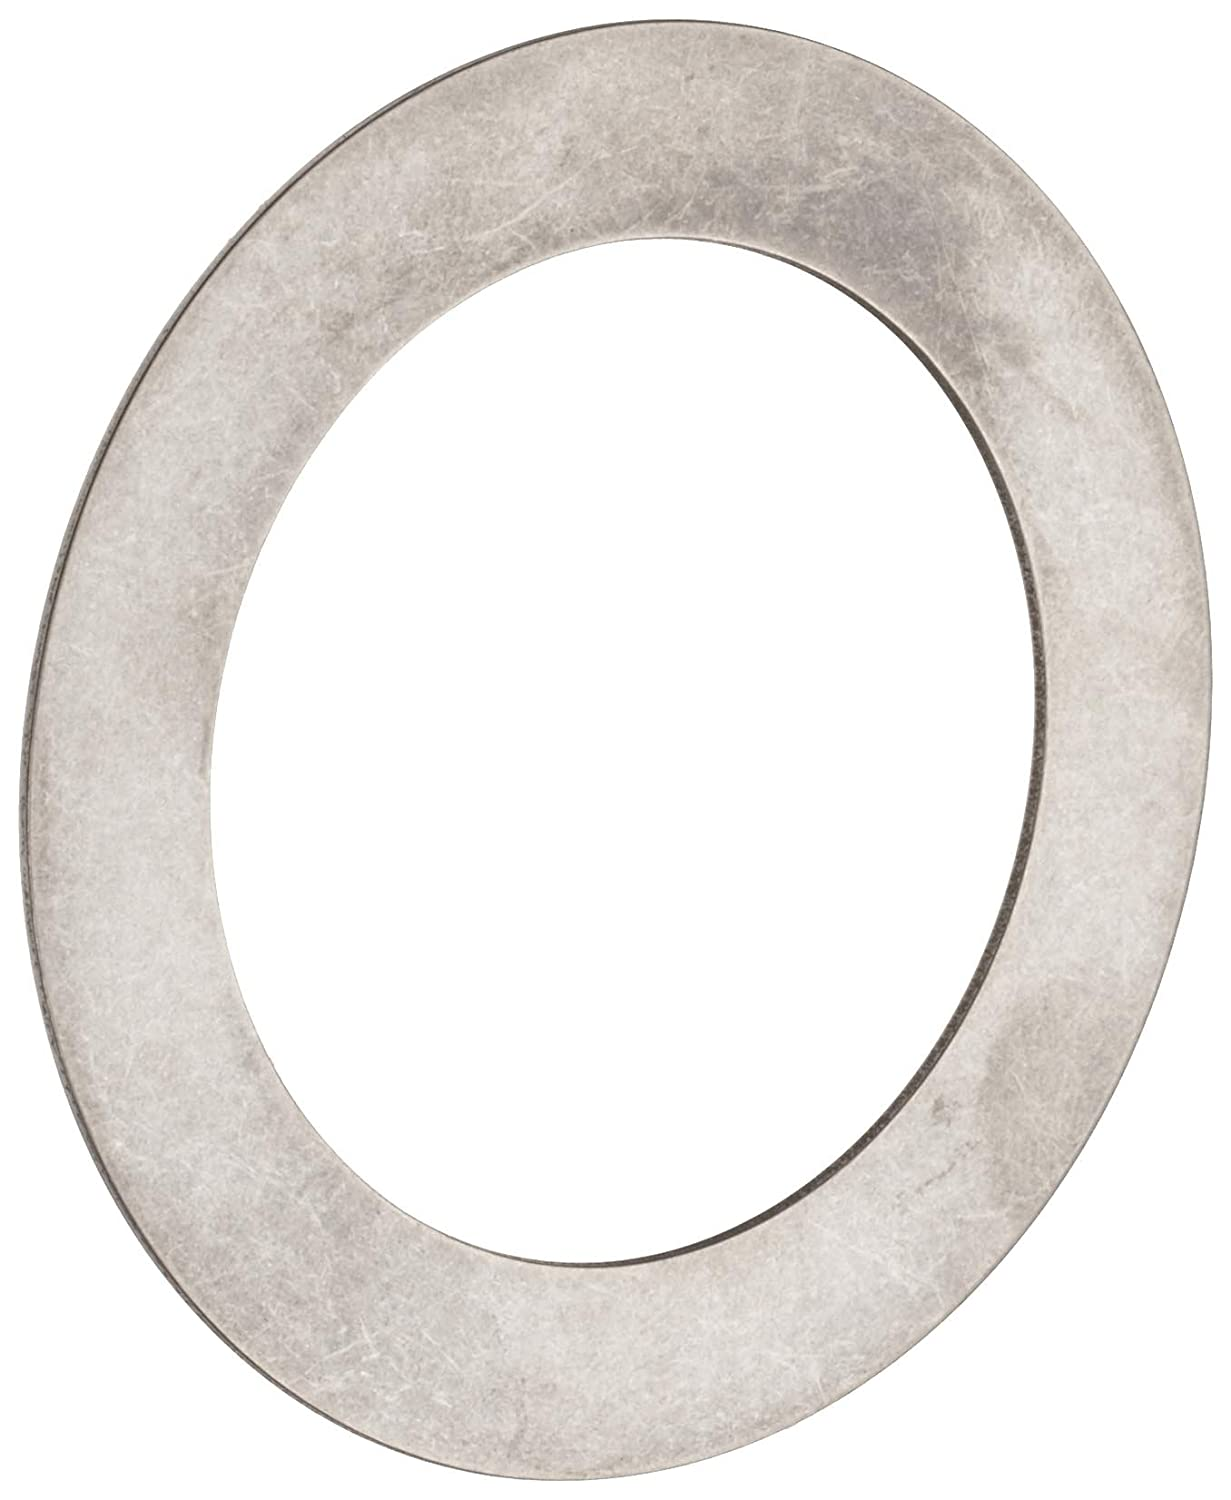 AS130170-INA, Bearings, Axial thrust washers